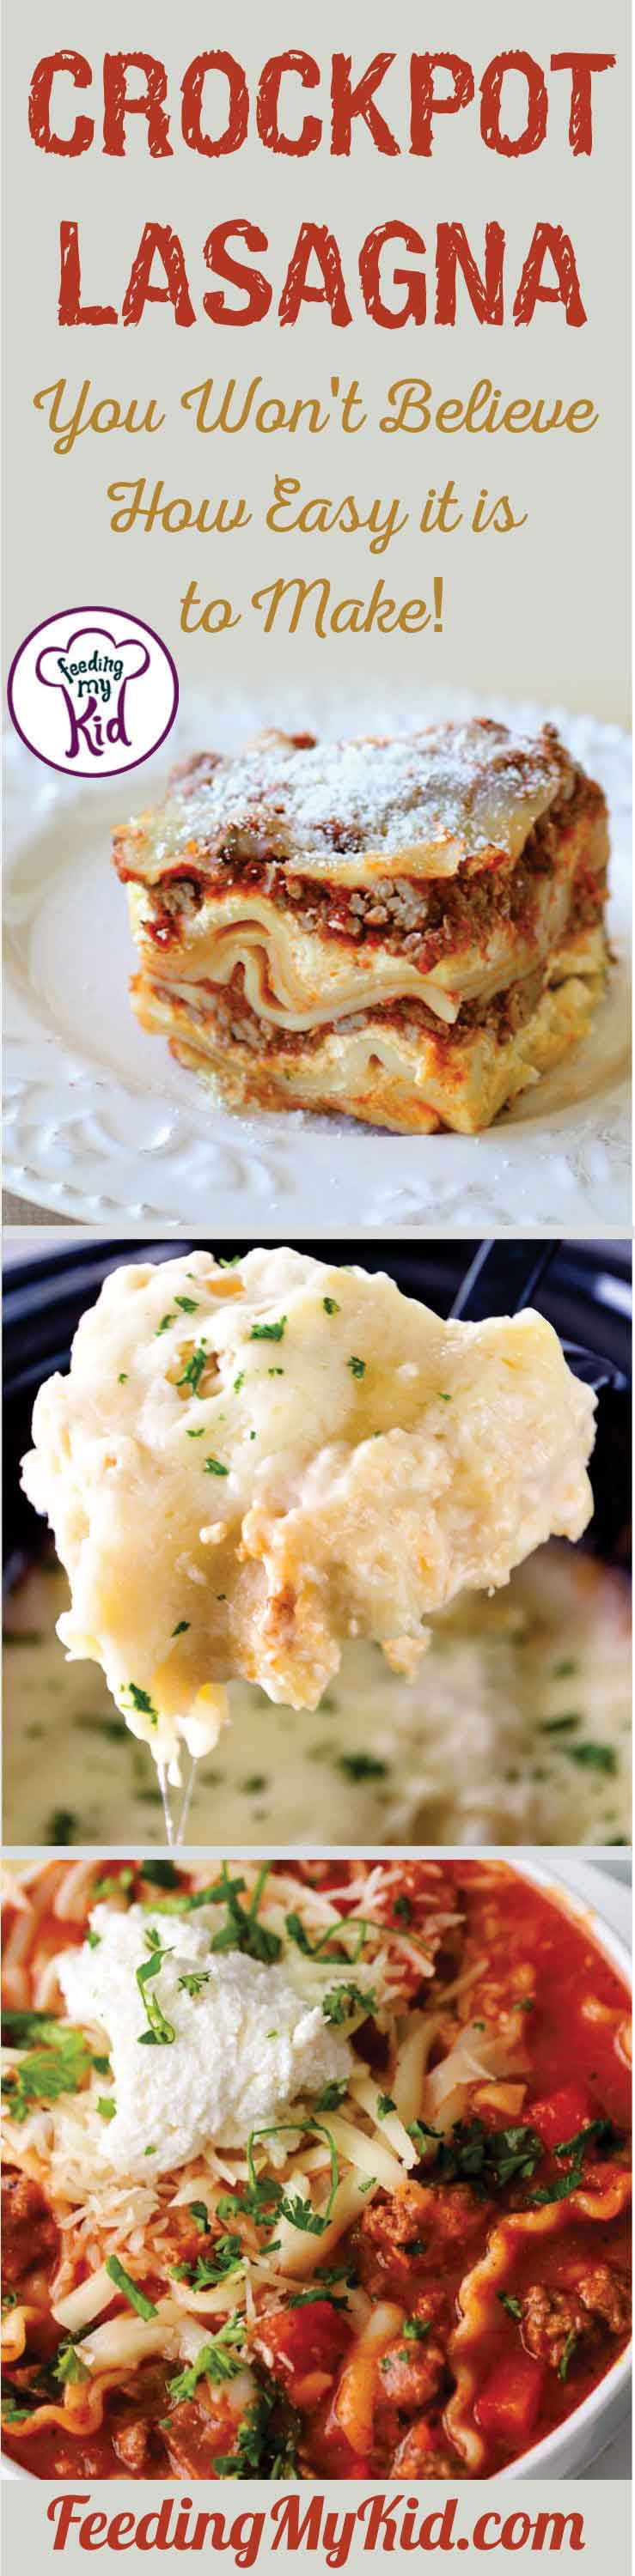 Crockpots are a must have in your kitchen! These crockpot lasagna recipes make this easy dish even easier. From classic to Alfredo, you'll love these.